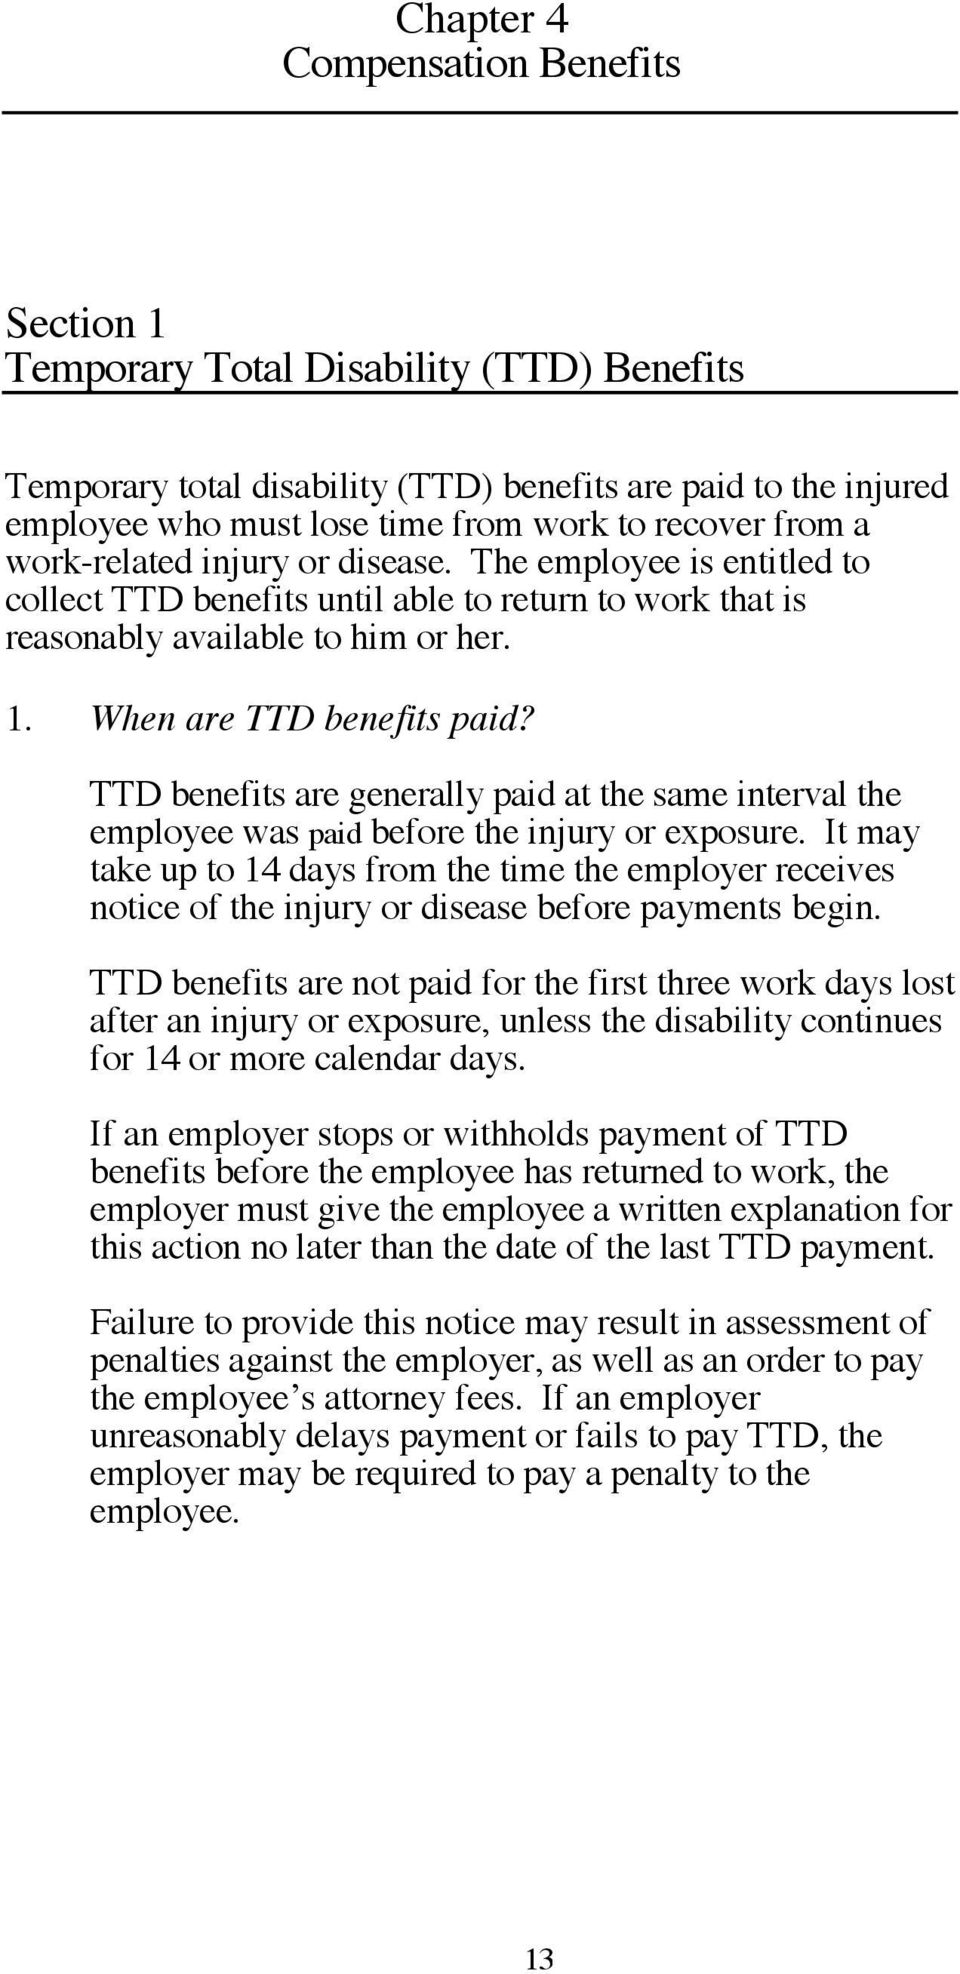 TTD benefits are generally paid at the same interval the employee was paid before the injury or exposure.